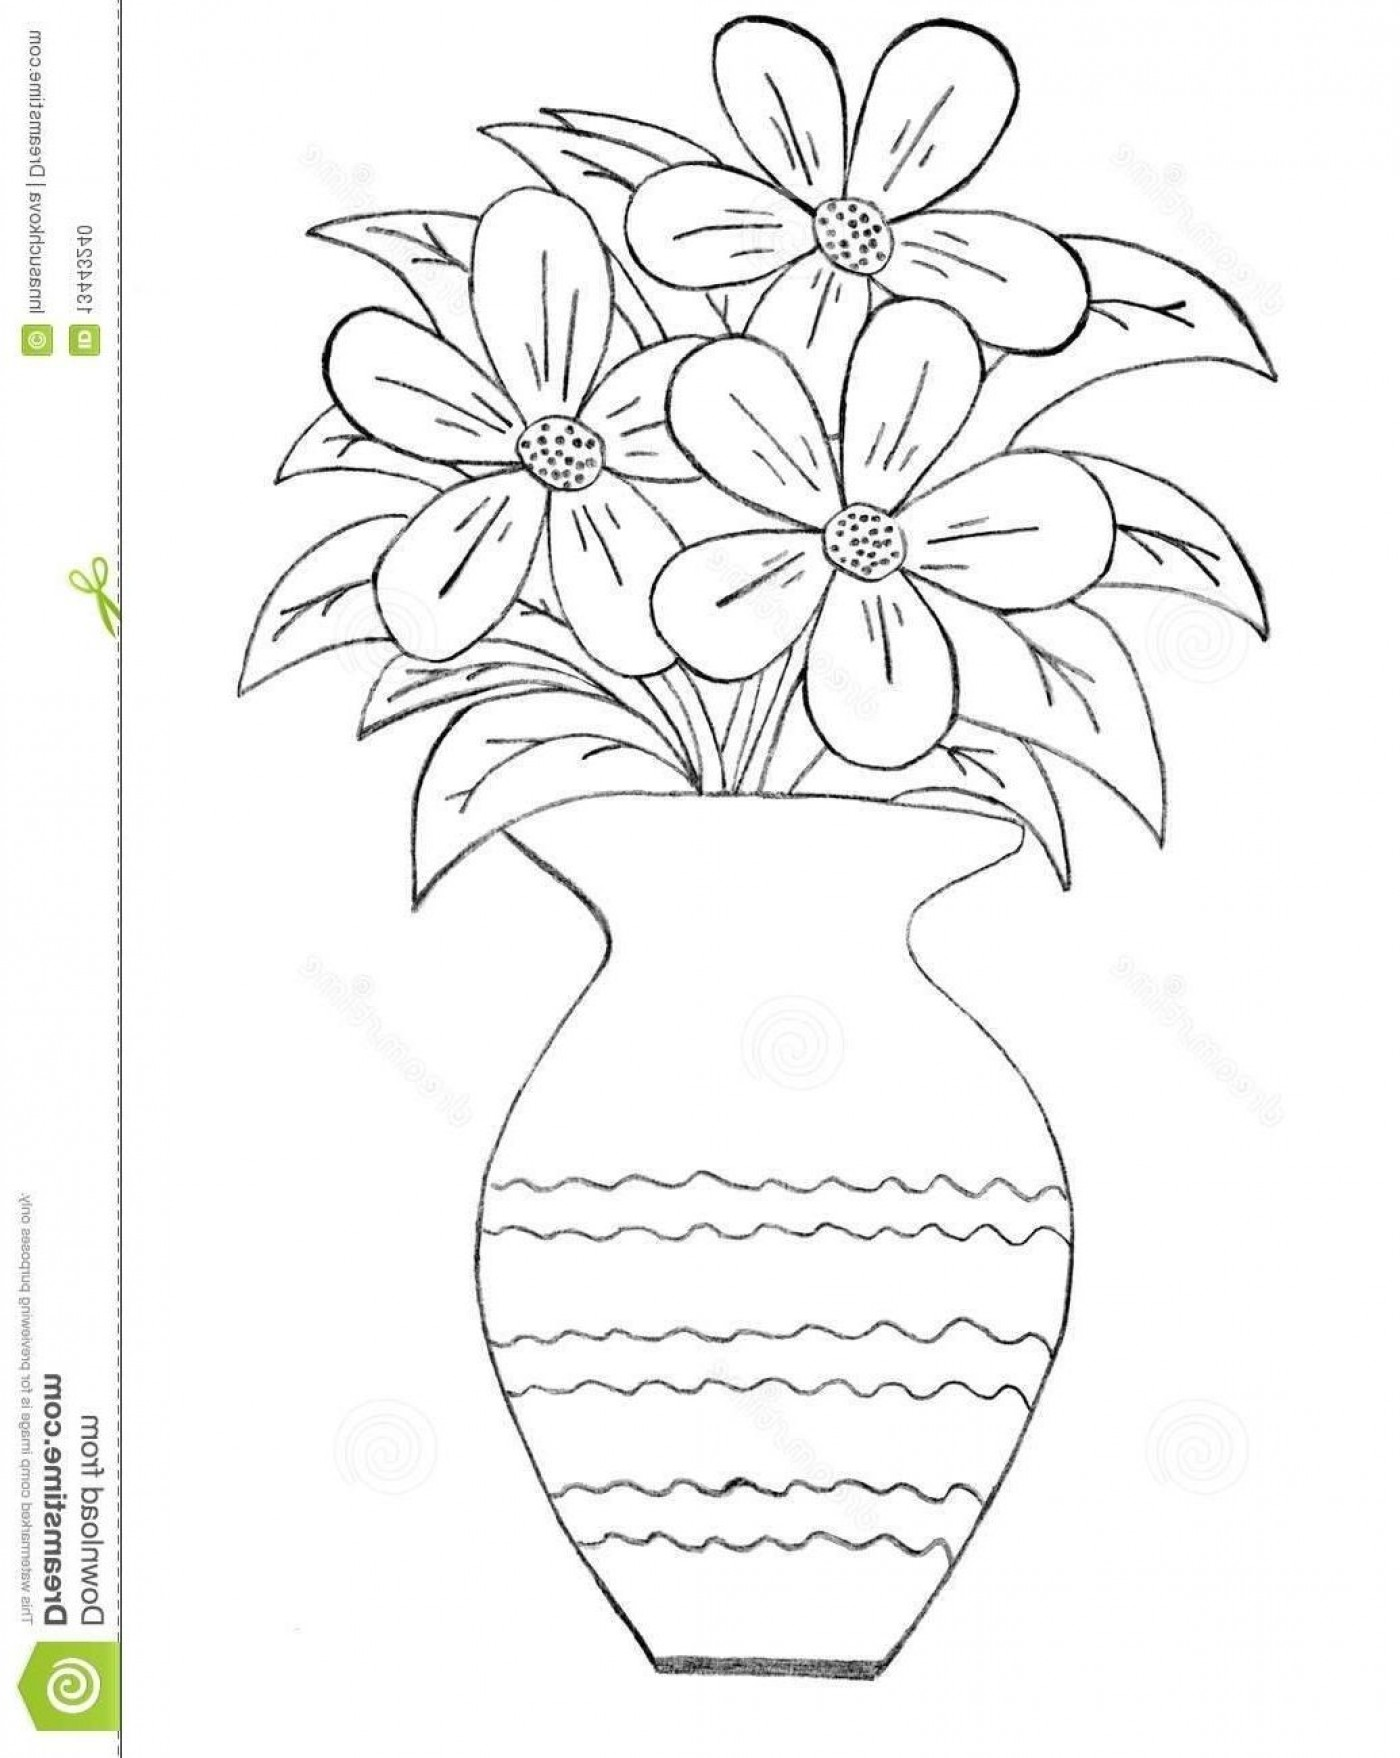 how to draw a bouquet of flowers in a vase stock vector flower coloring pages coloring pages bouquet to flowers a in draw of vase a how